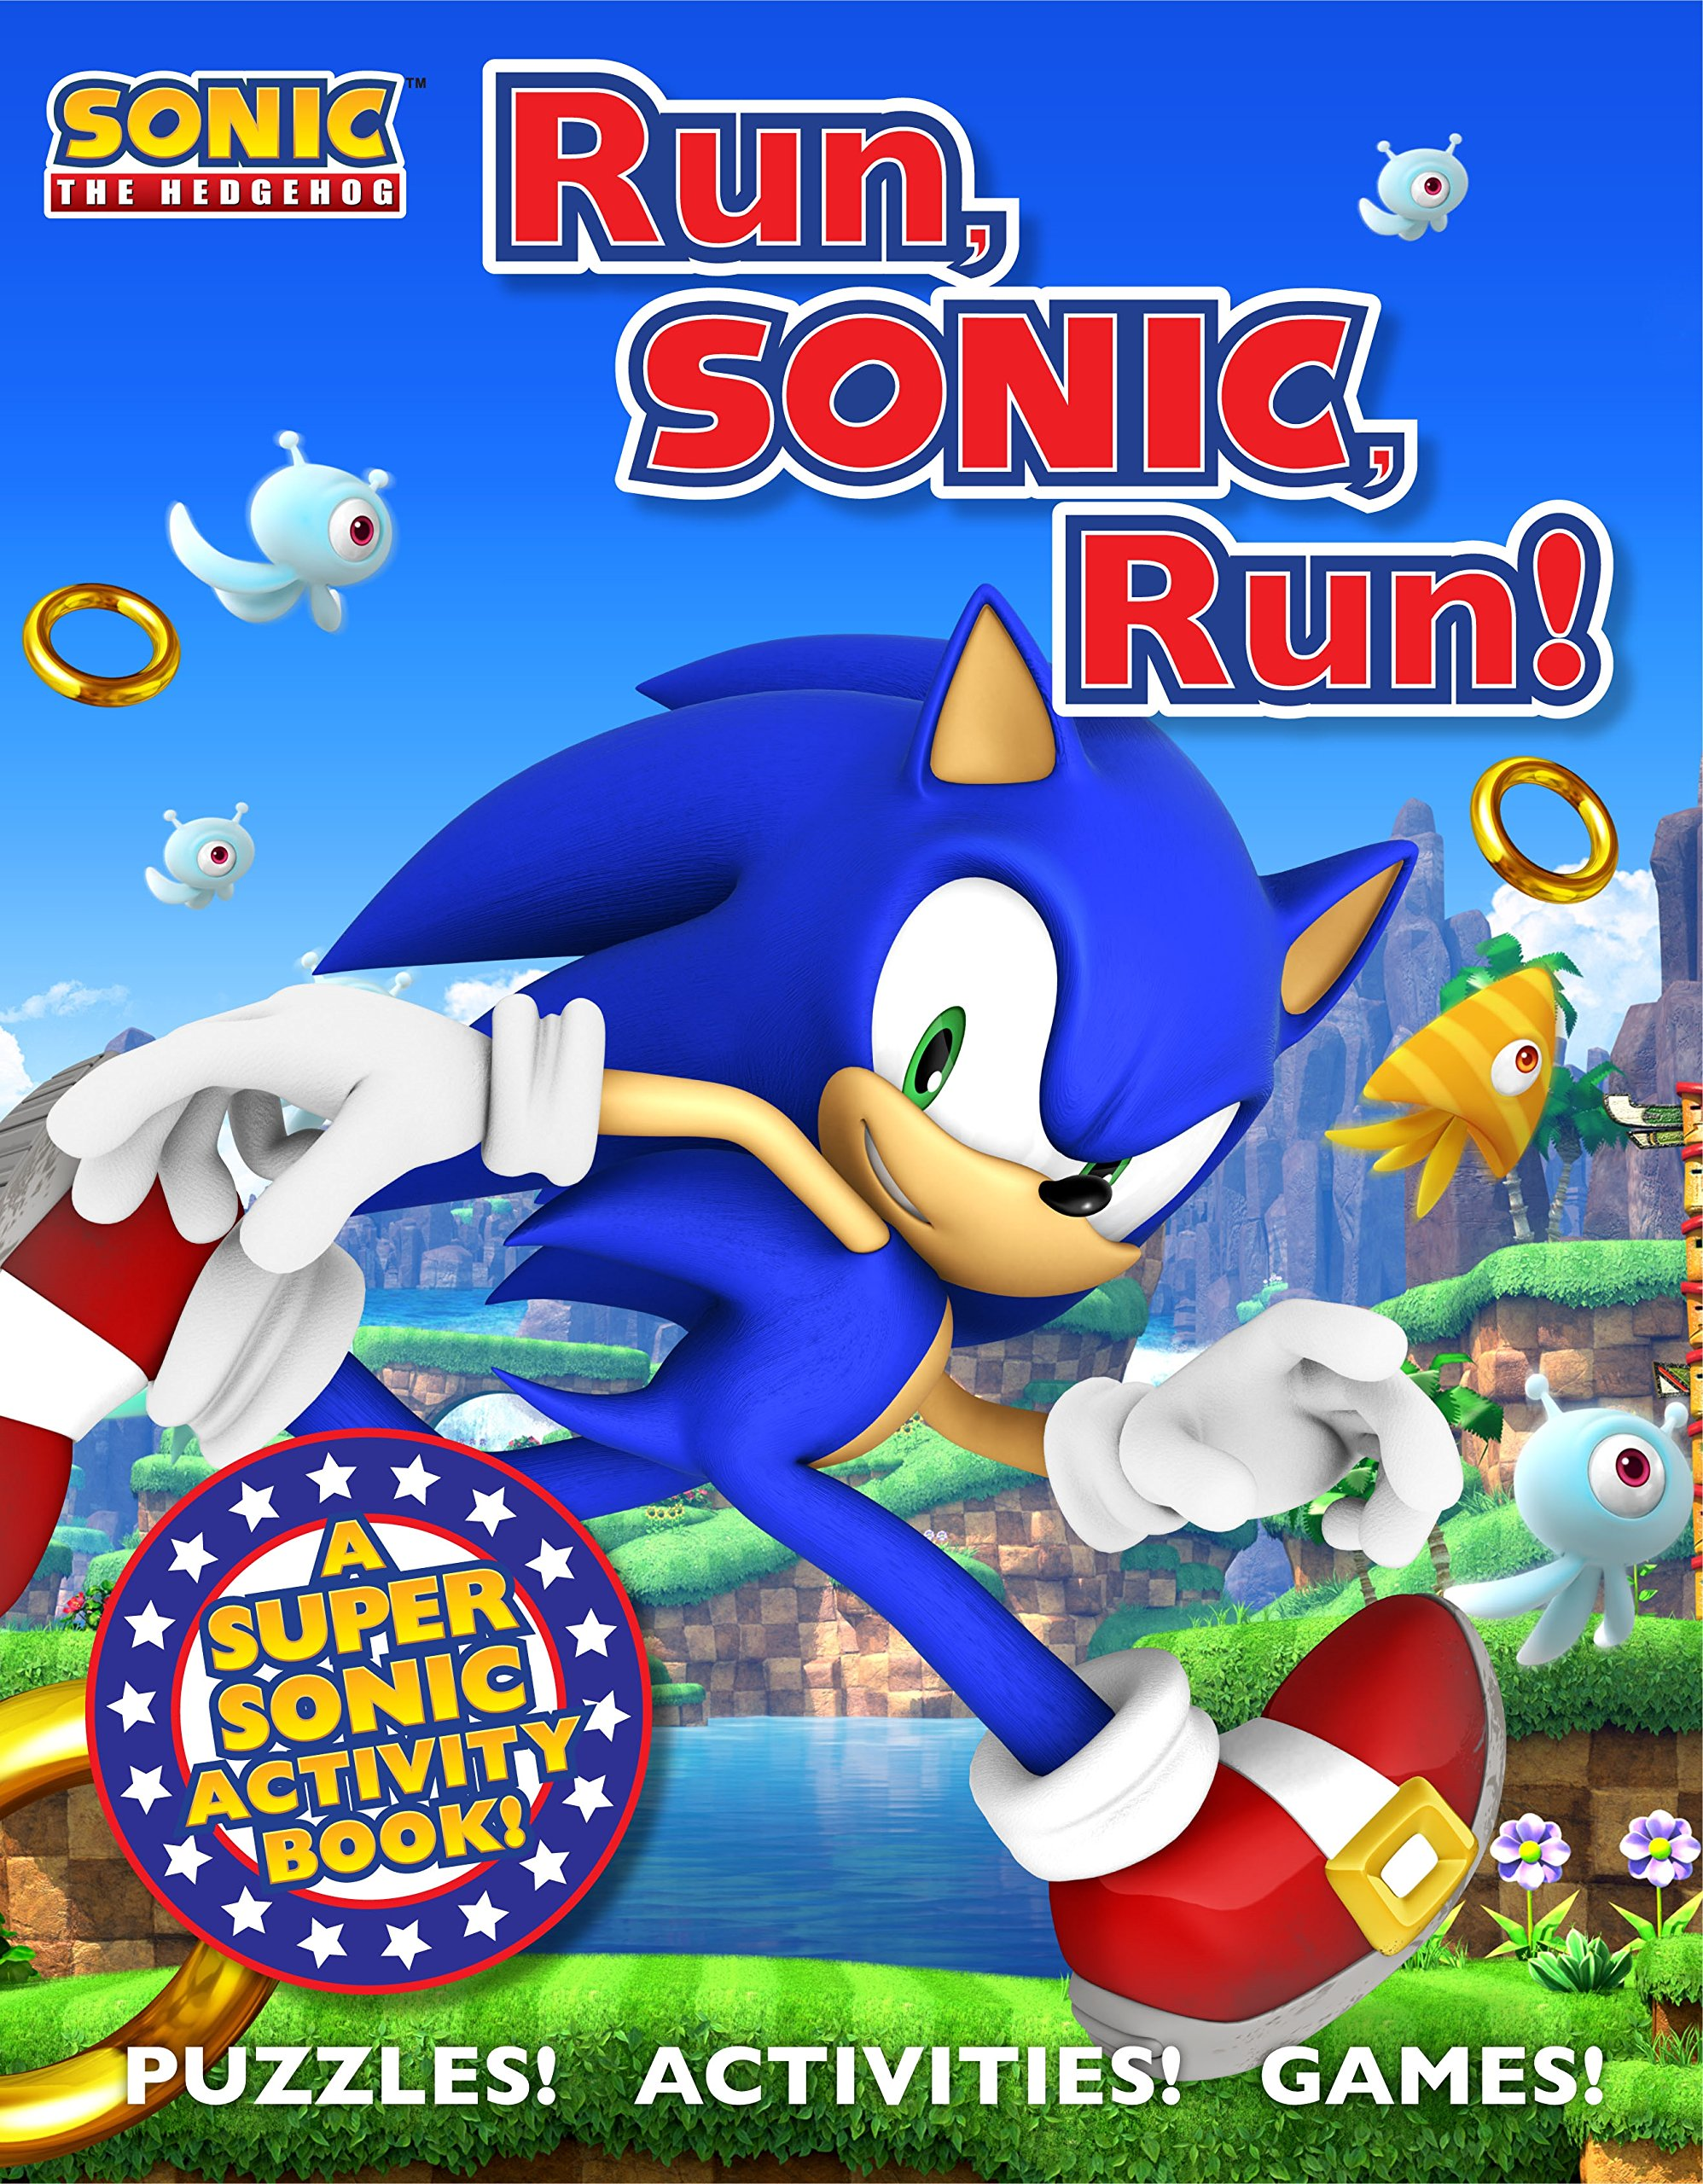 Sonic The Hedgehog Activity Book A Sonic The Hedgehog Activity Book Macmillan Children S Books 9781447246220 Amazon Com Books